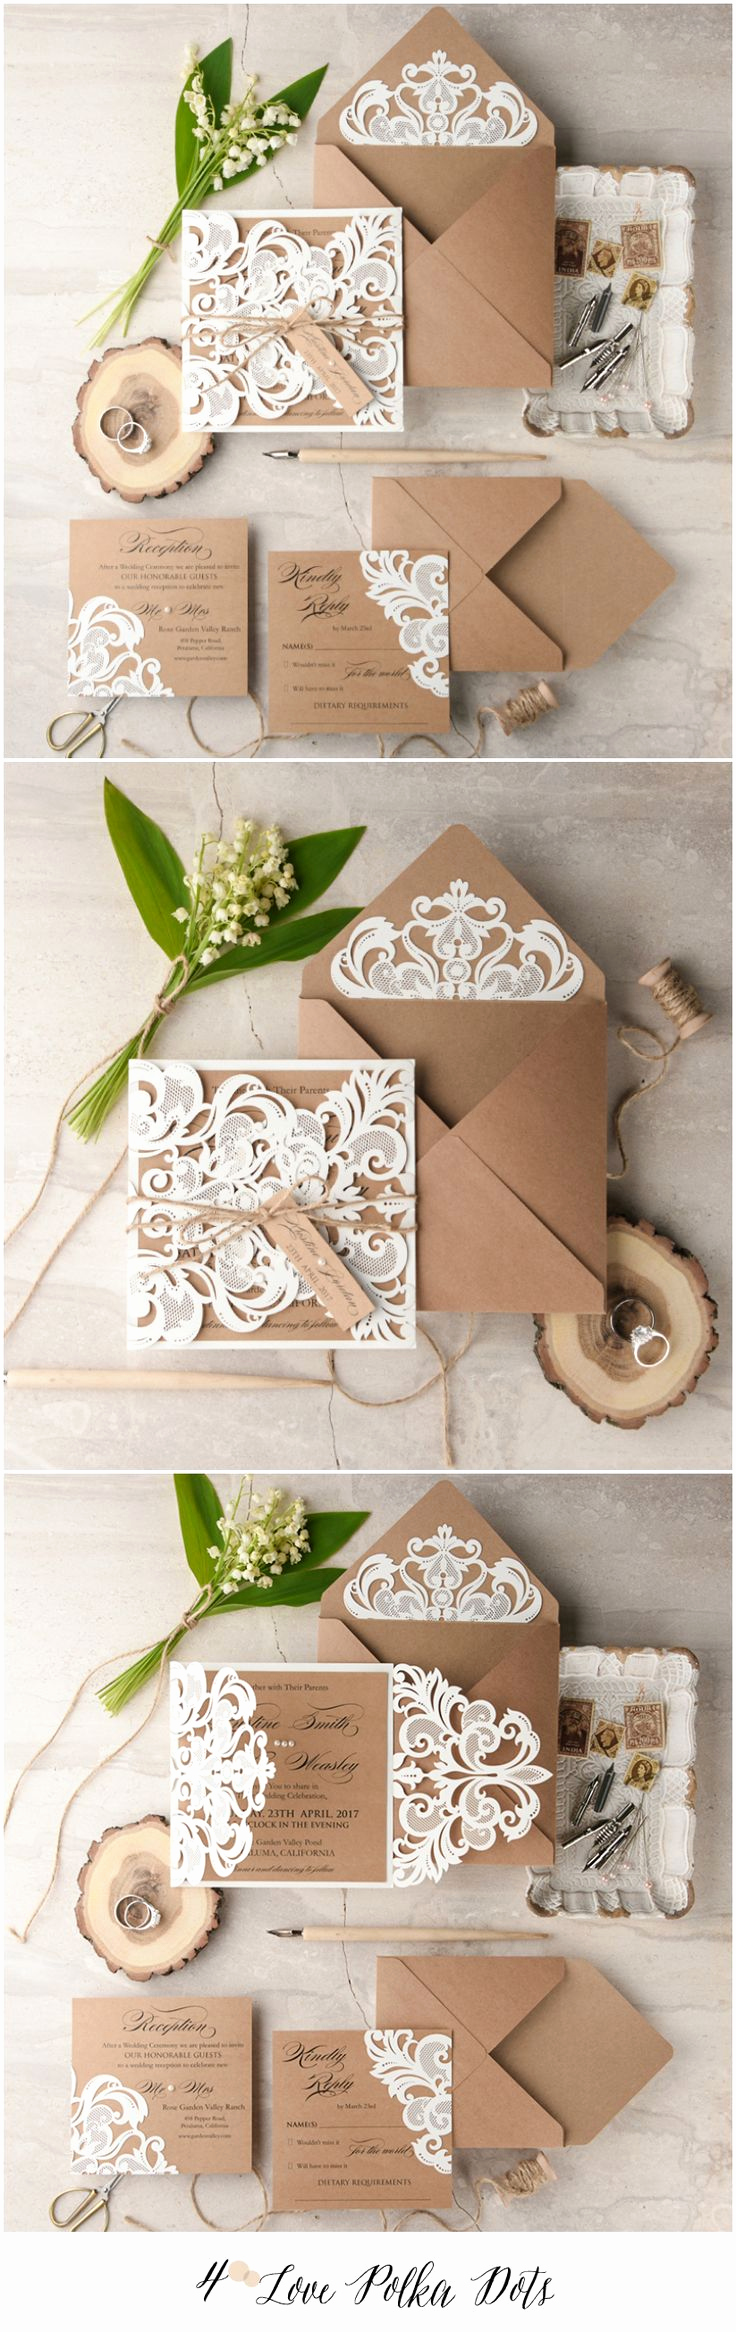 Wedding Invitation Ideas Pinterest Inspirational Best 25 Handmade Wedding Invitations Ideas On Pinterest